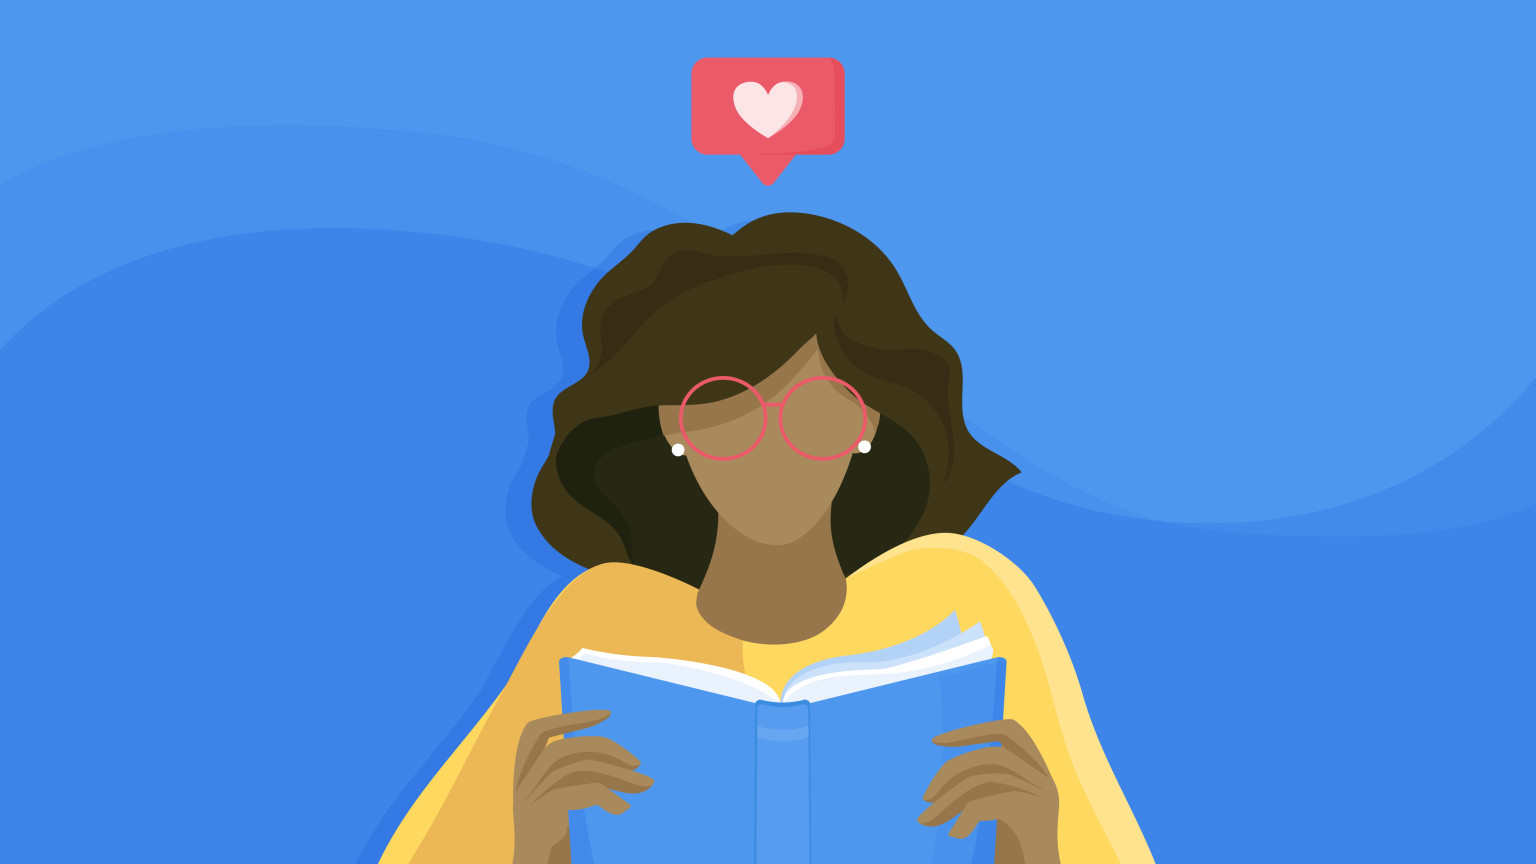 An illustration of a person reading a book with a heart notification above their head.